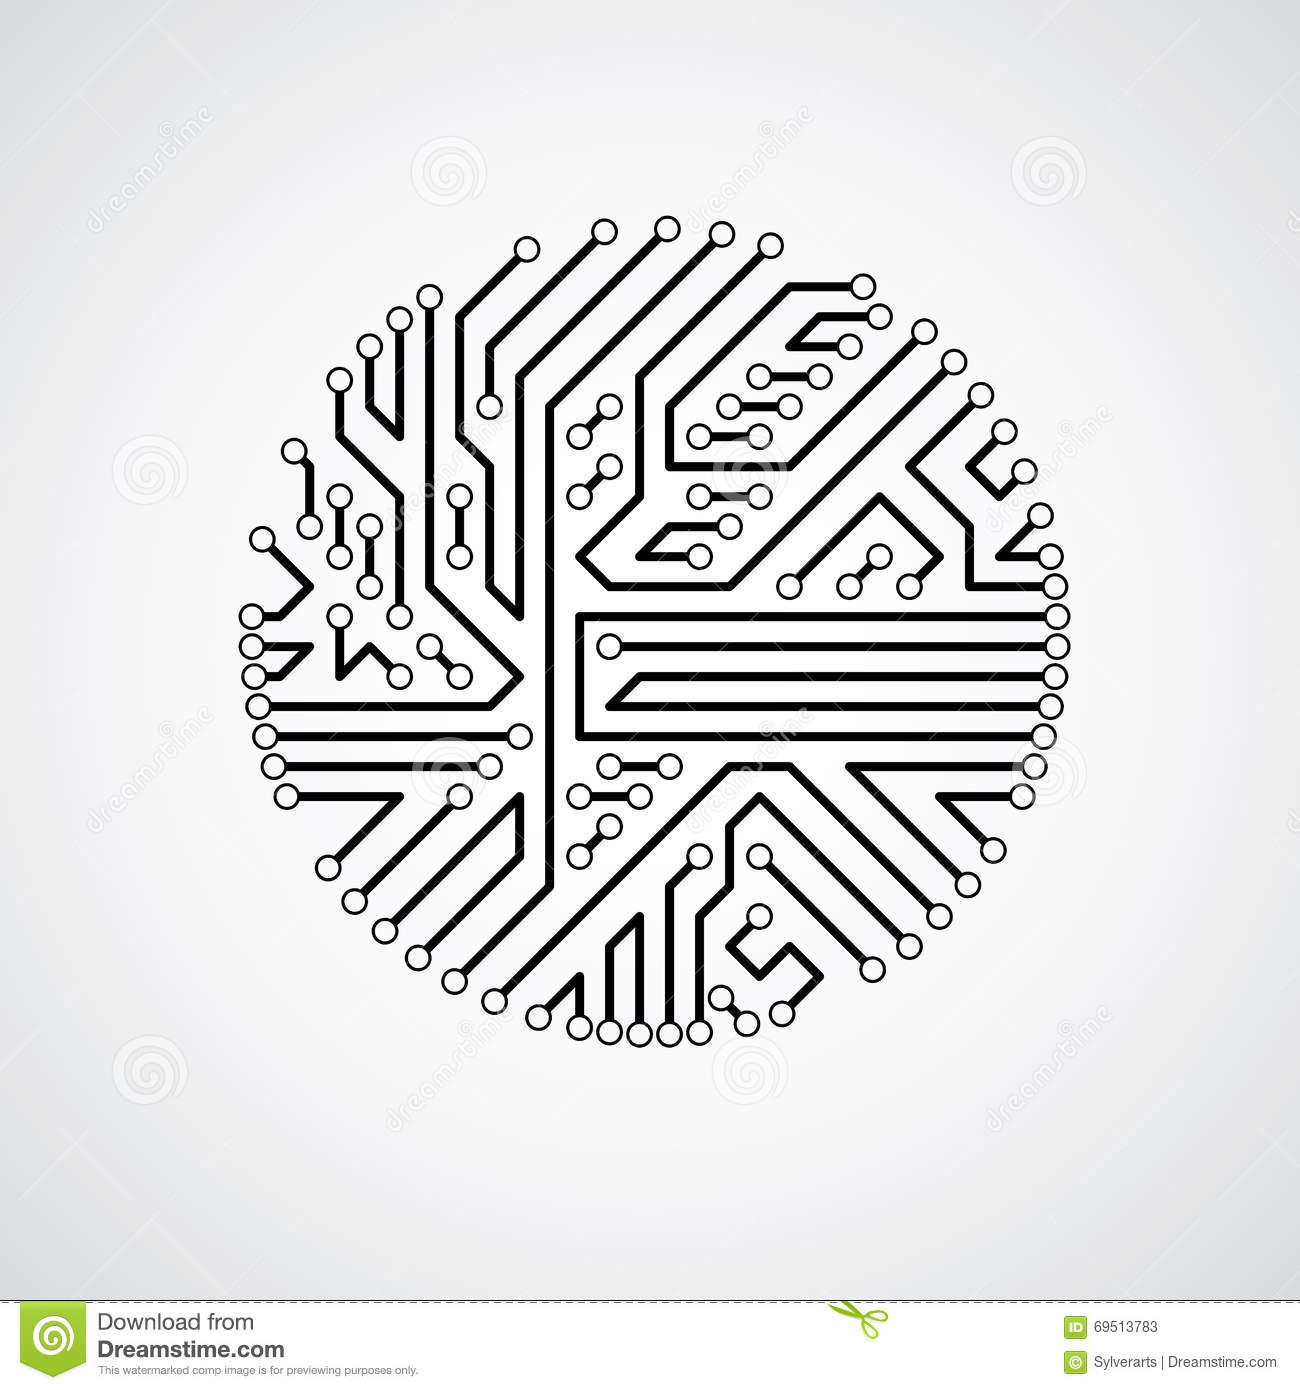 futuristic cybernetic scheme  vector motherboard black and white stock vector